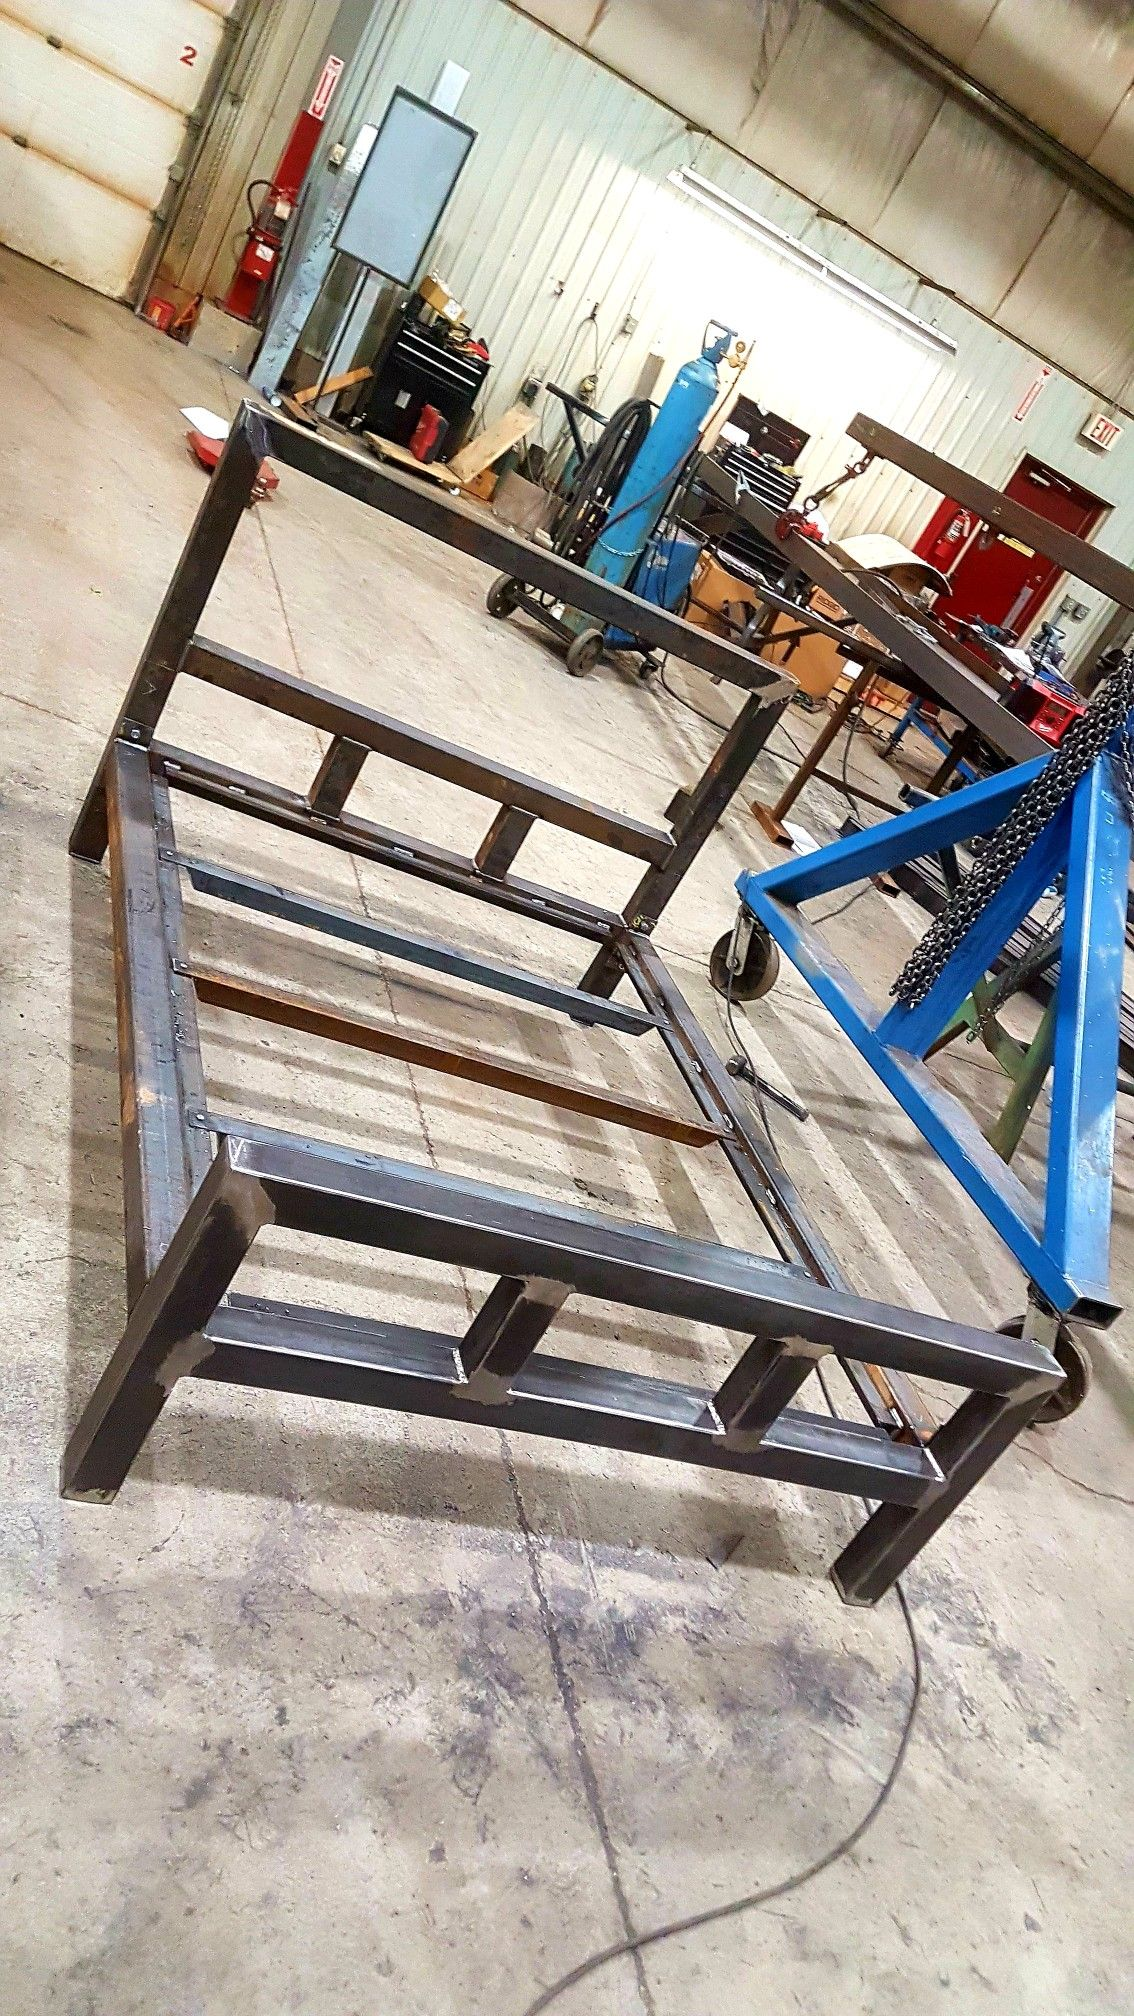 I Was Tired Of A Flimsy Bed So I Made A Heavy Duty Metal Bedframe